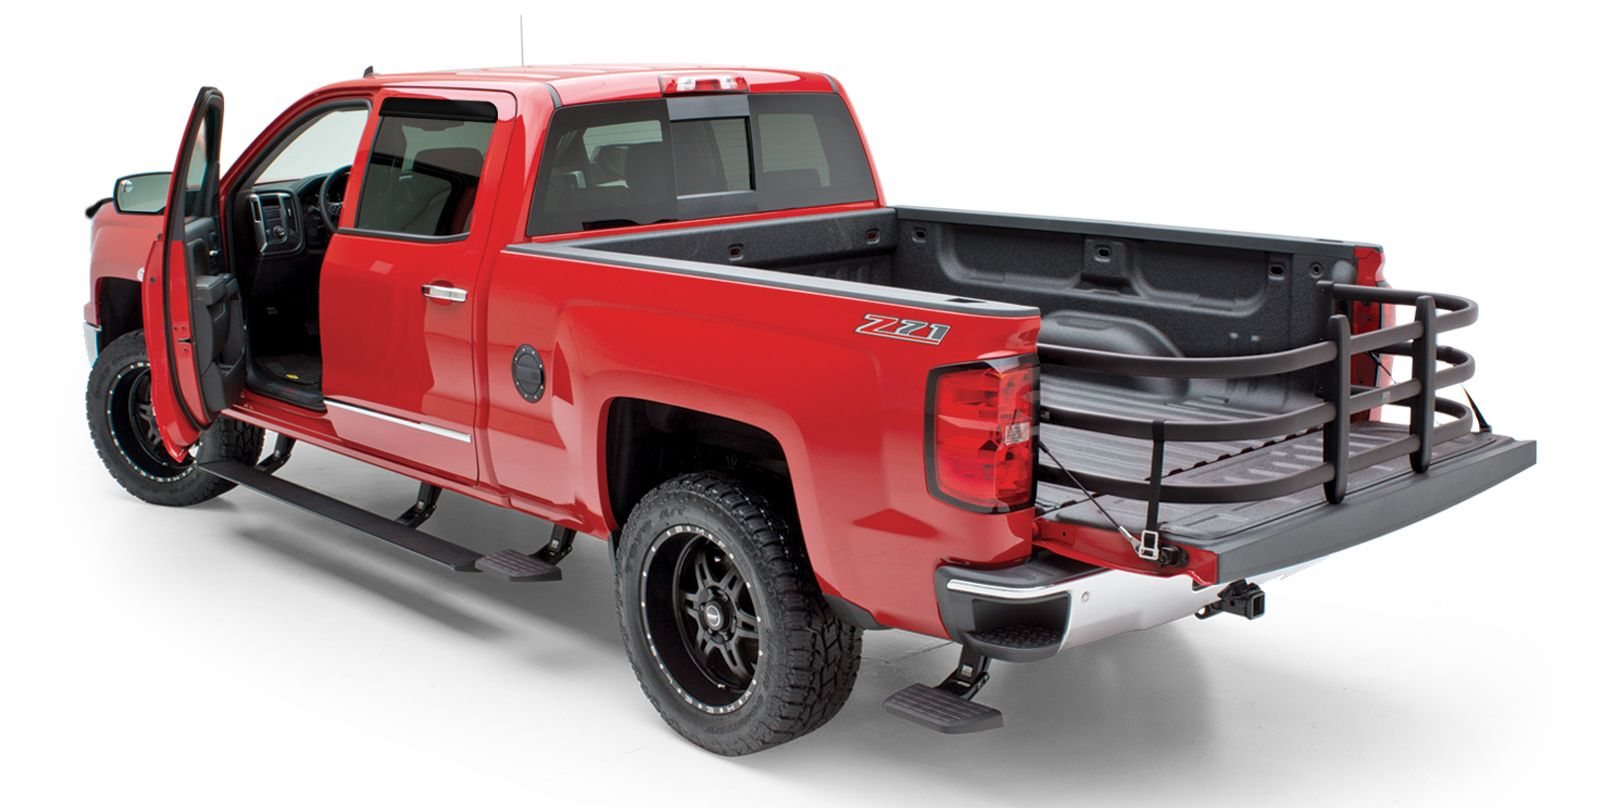 Wow, this is a great example of the truck steps that my